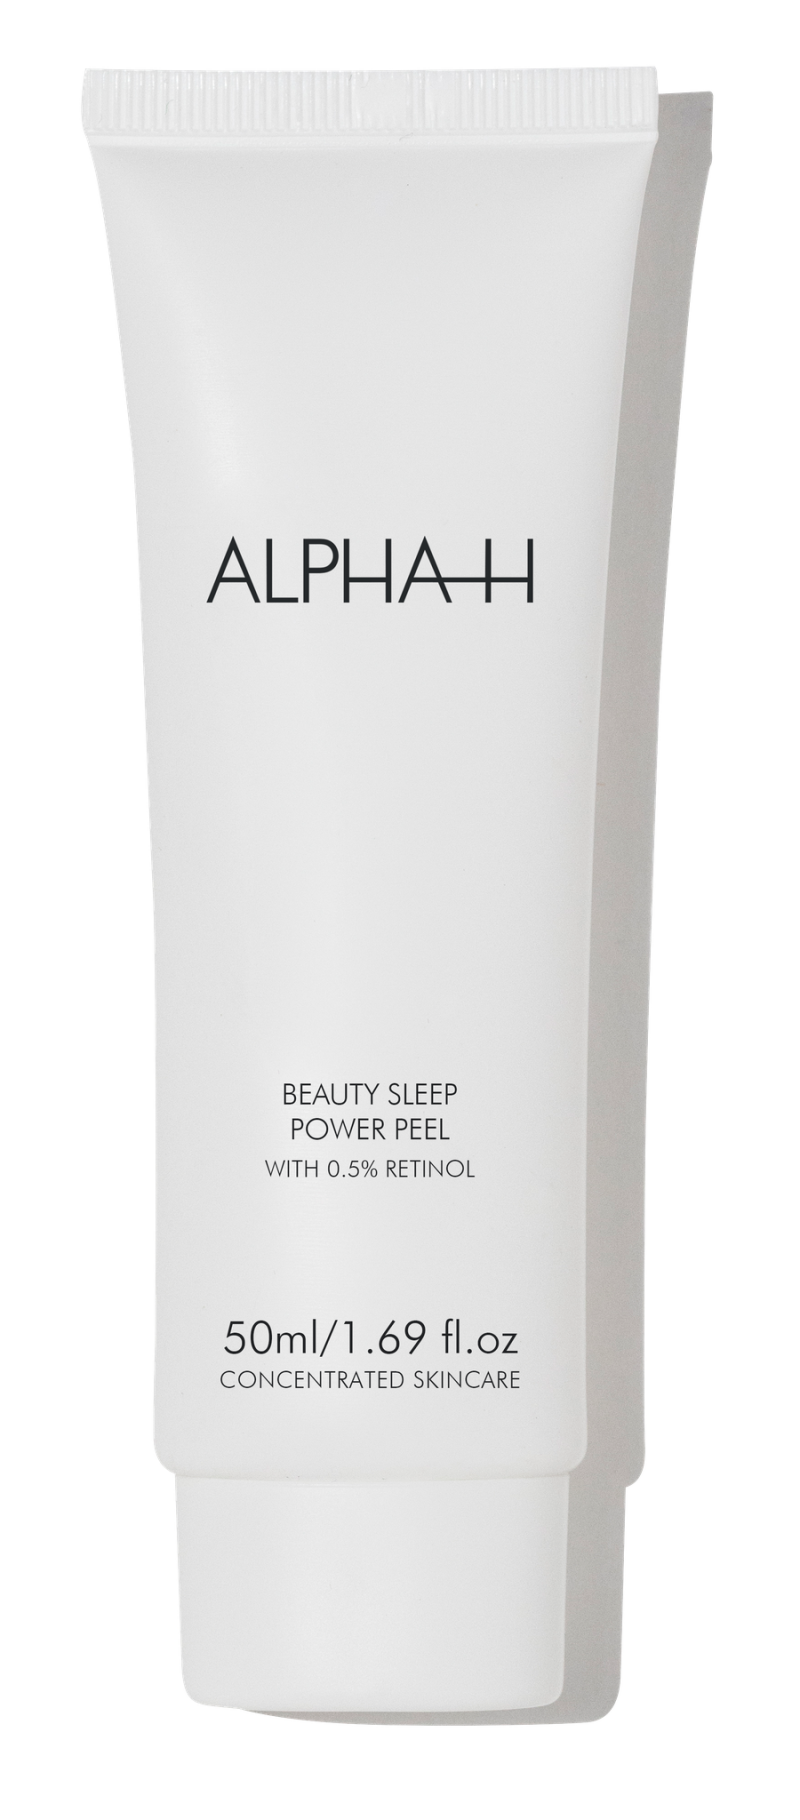 Beauty Sleep Power Peel